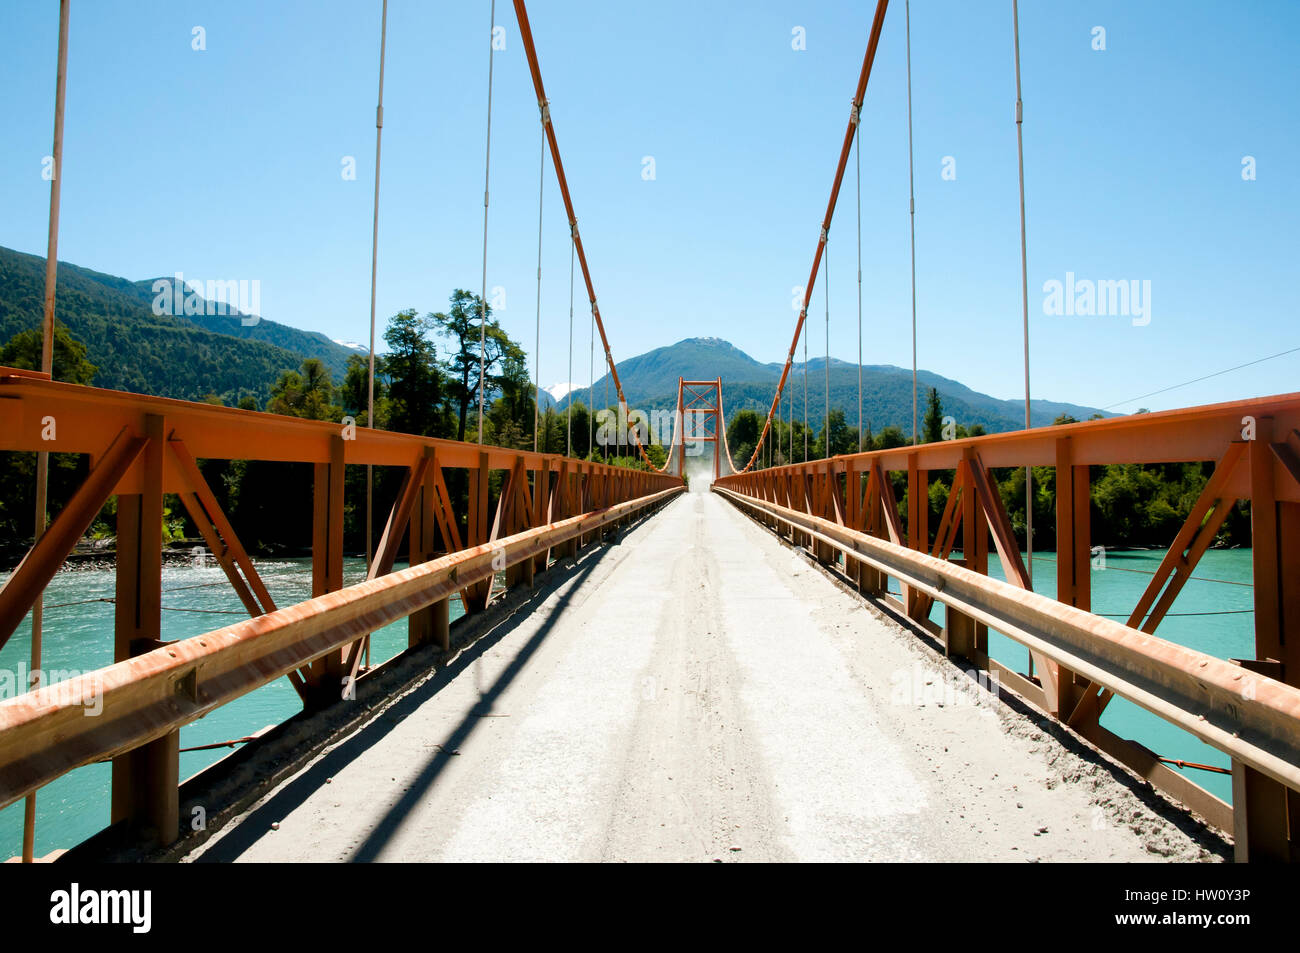 Exequiel Gonzales Bridge - Carretera Austral - Chile - Stock Image